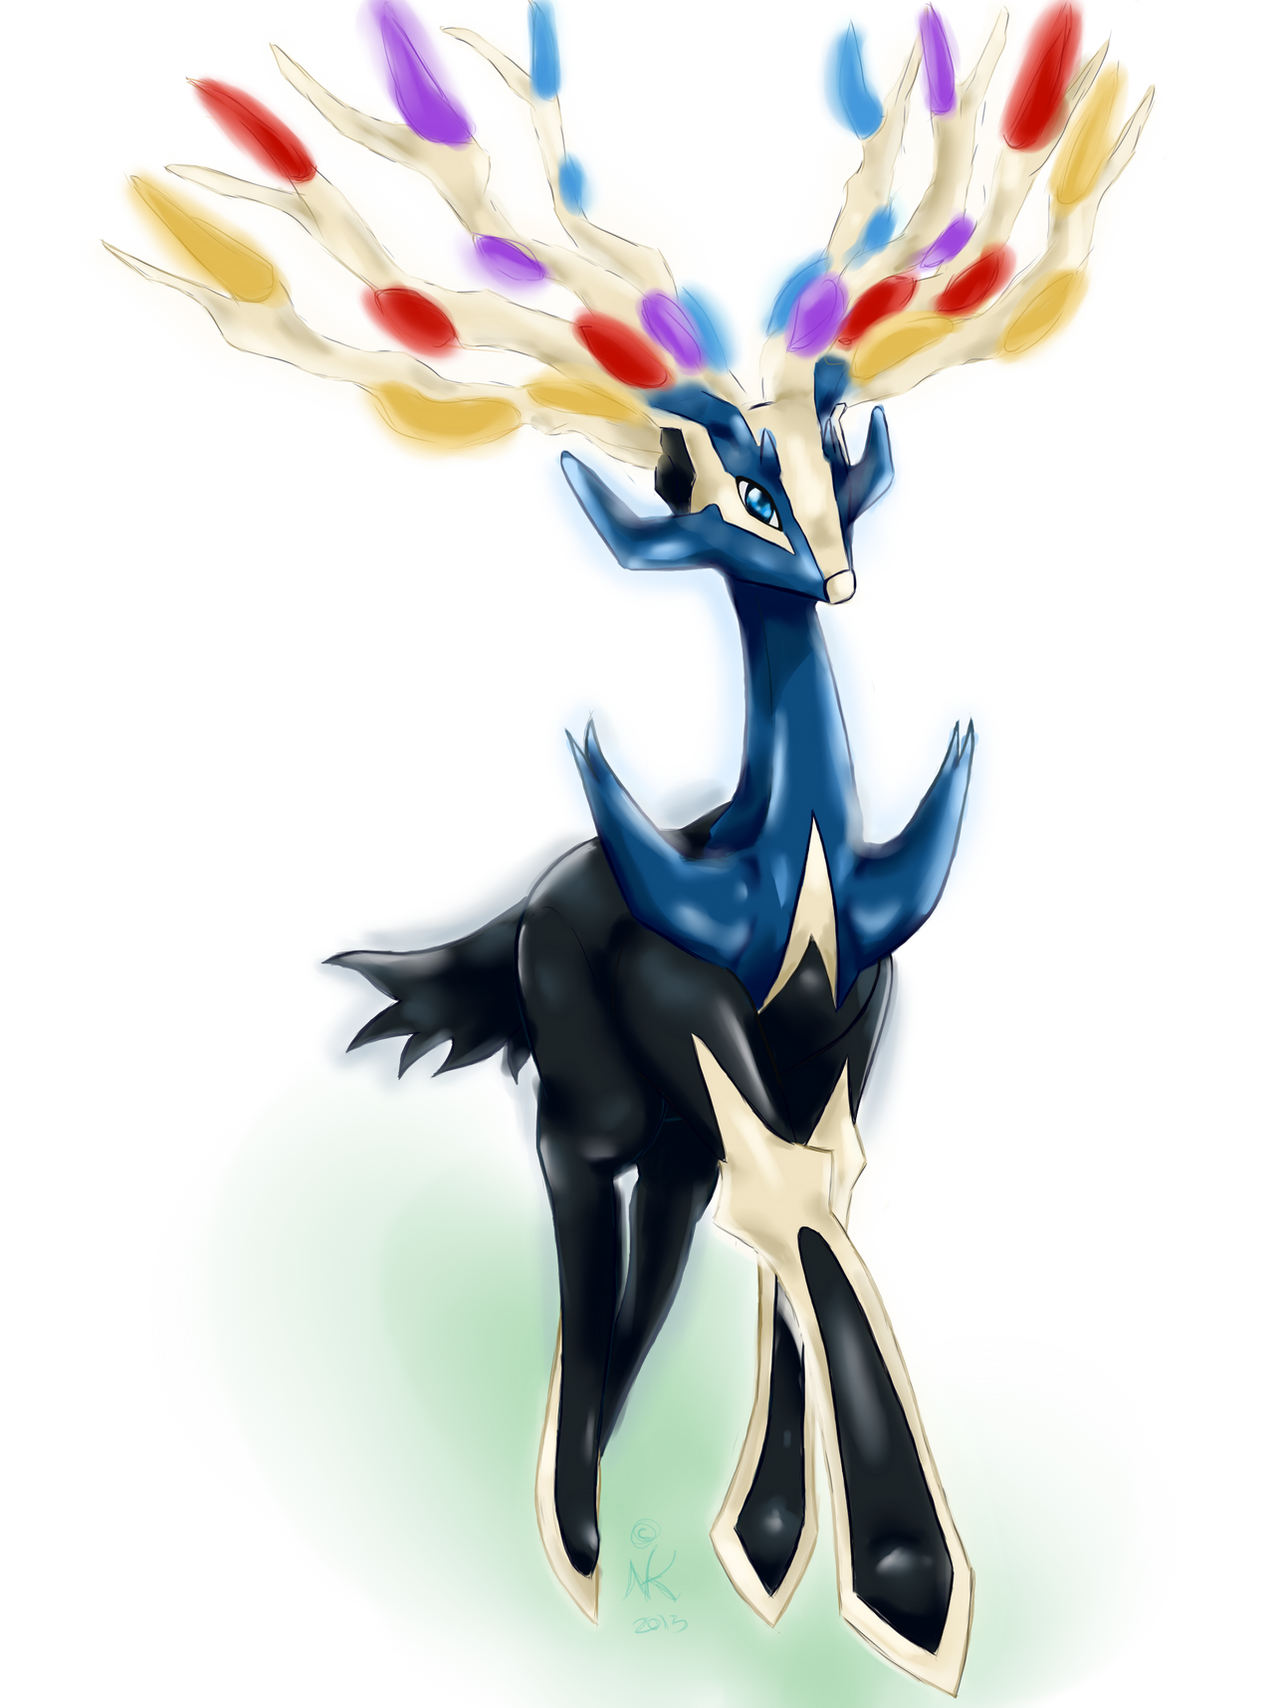 New Legendary Xerneas by LittleOcean